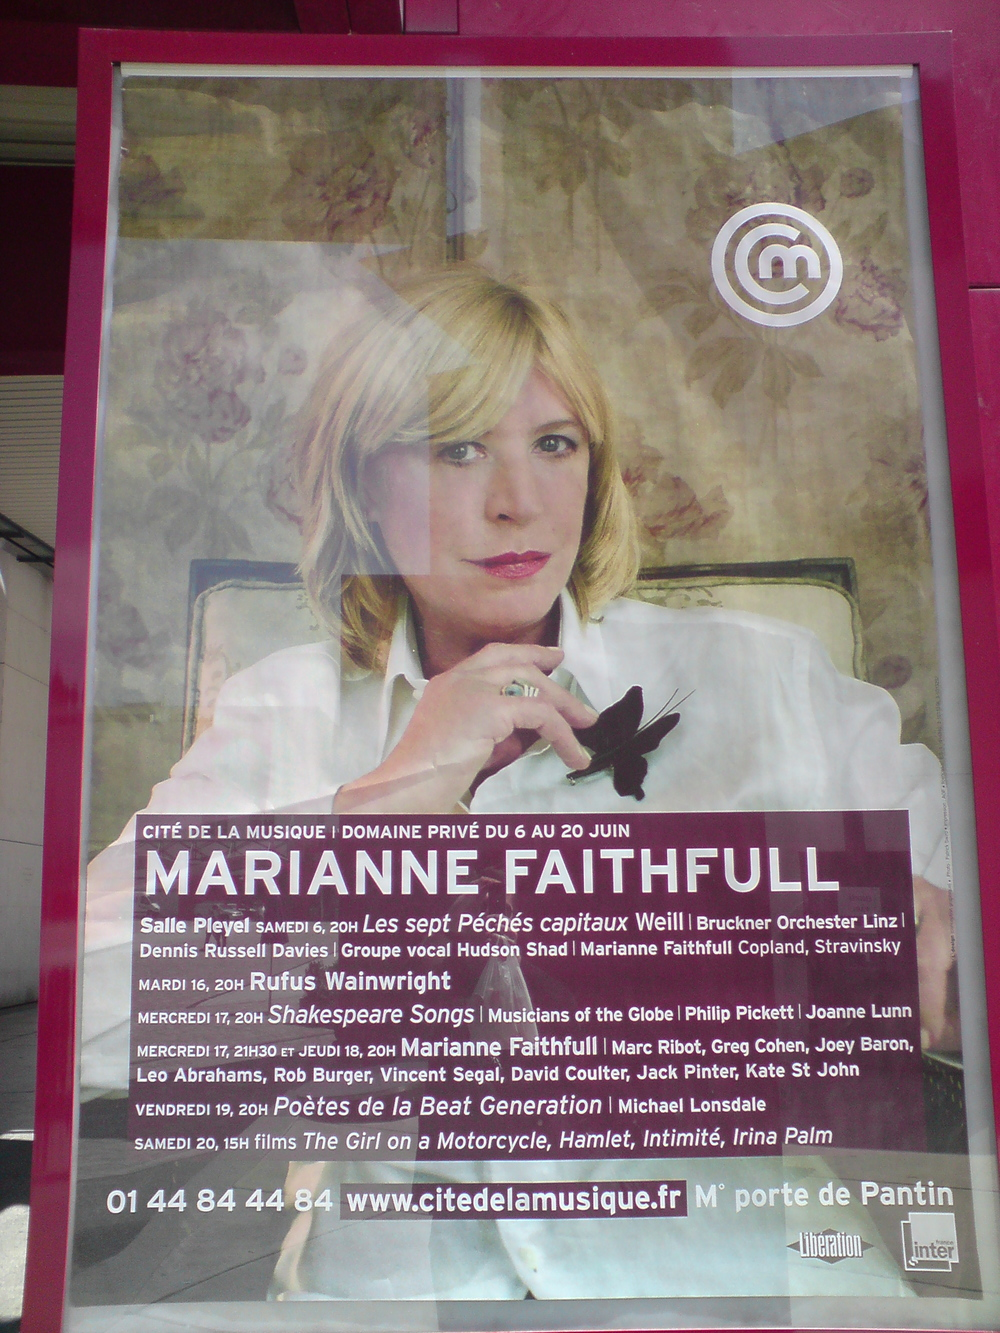 Poster for Marianne Faithfull Big Band gig, Cite de la Musique, Paris 2009